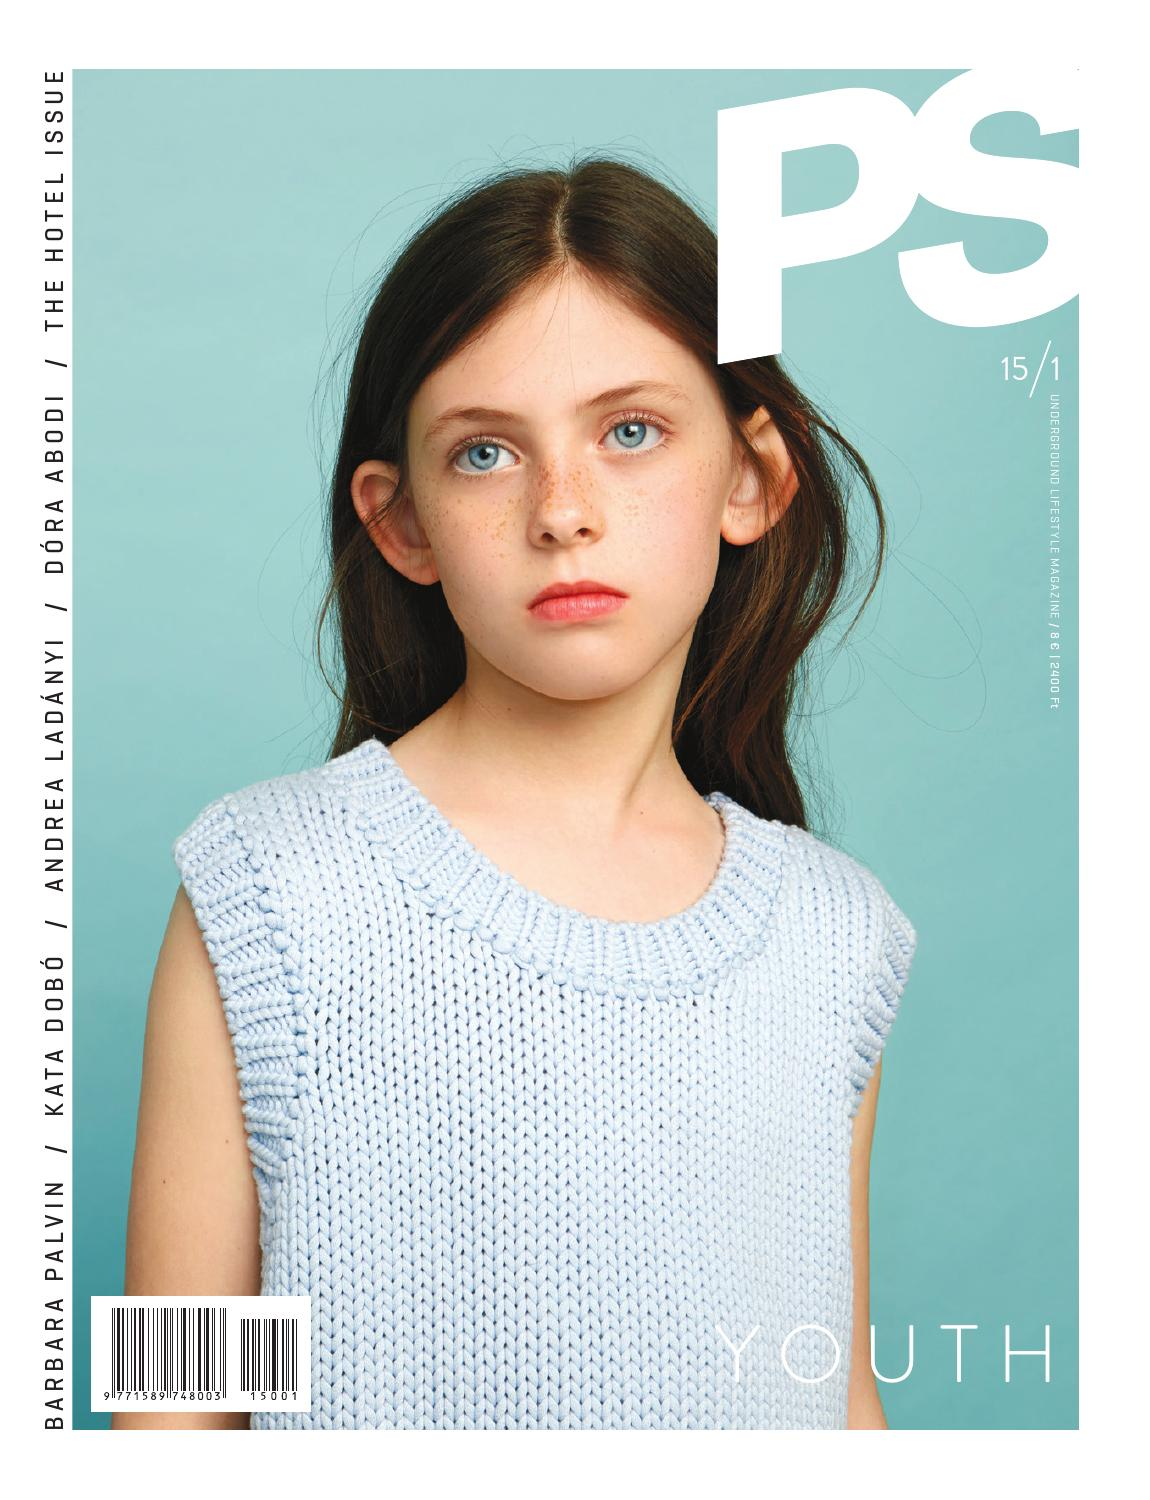 8d9c303d44 PS Magazin 2015/1 by PS Magazine - issuu